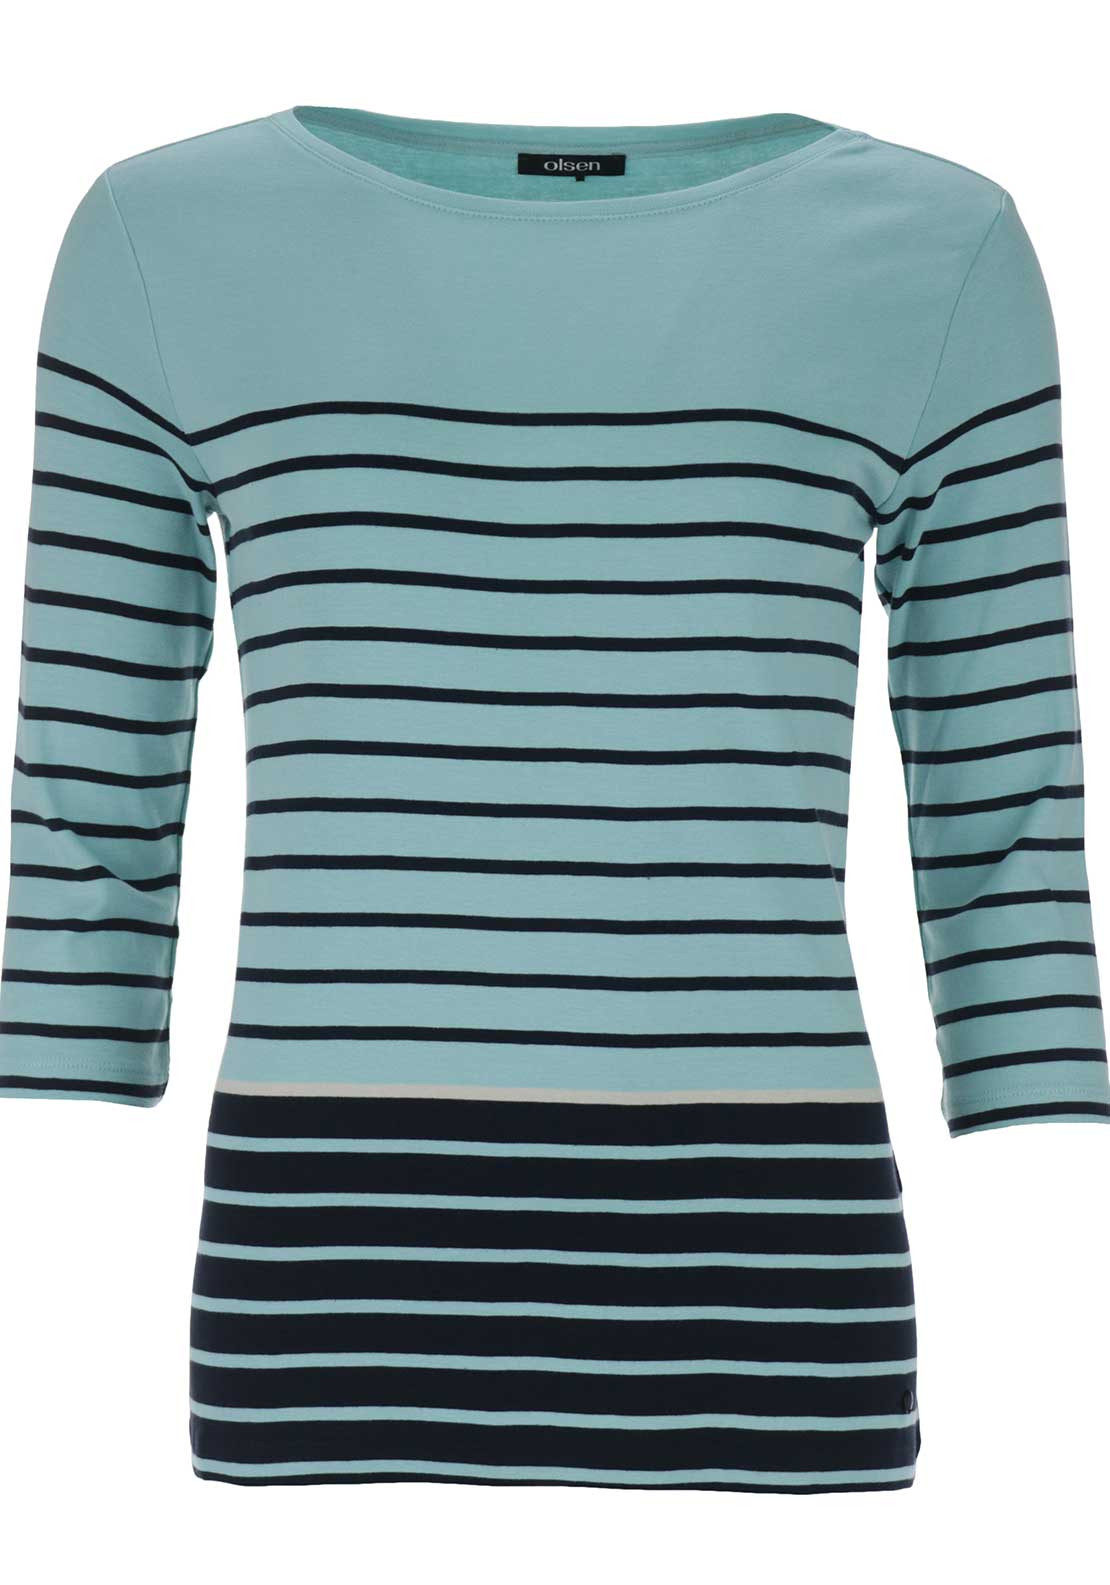 Olsen Striped Cropped Sleeve Top, Mint Green Multi